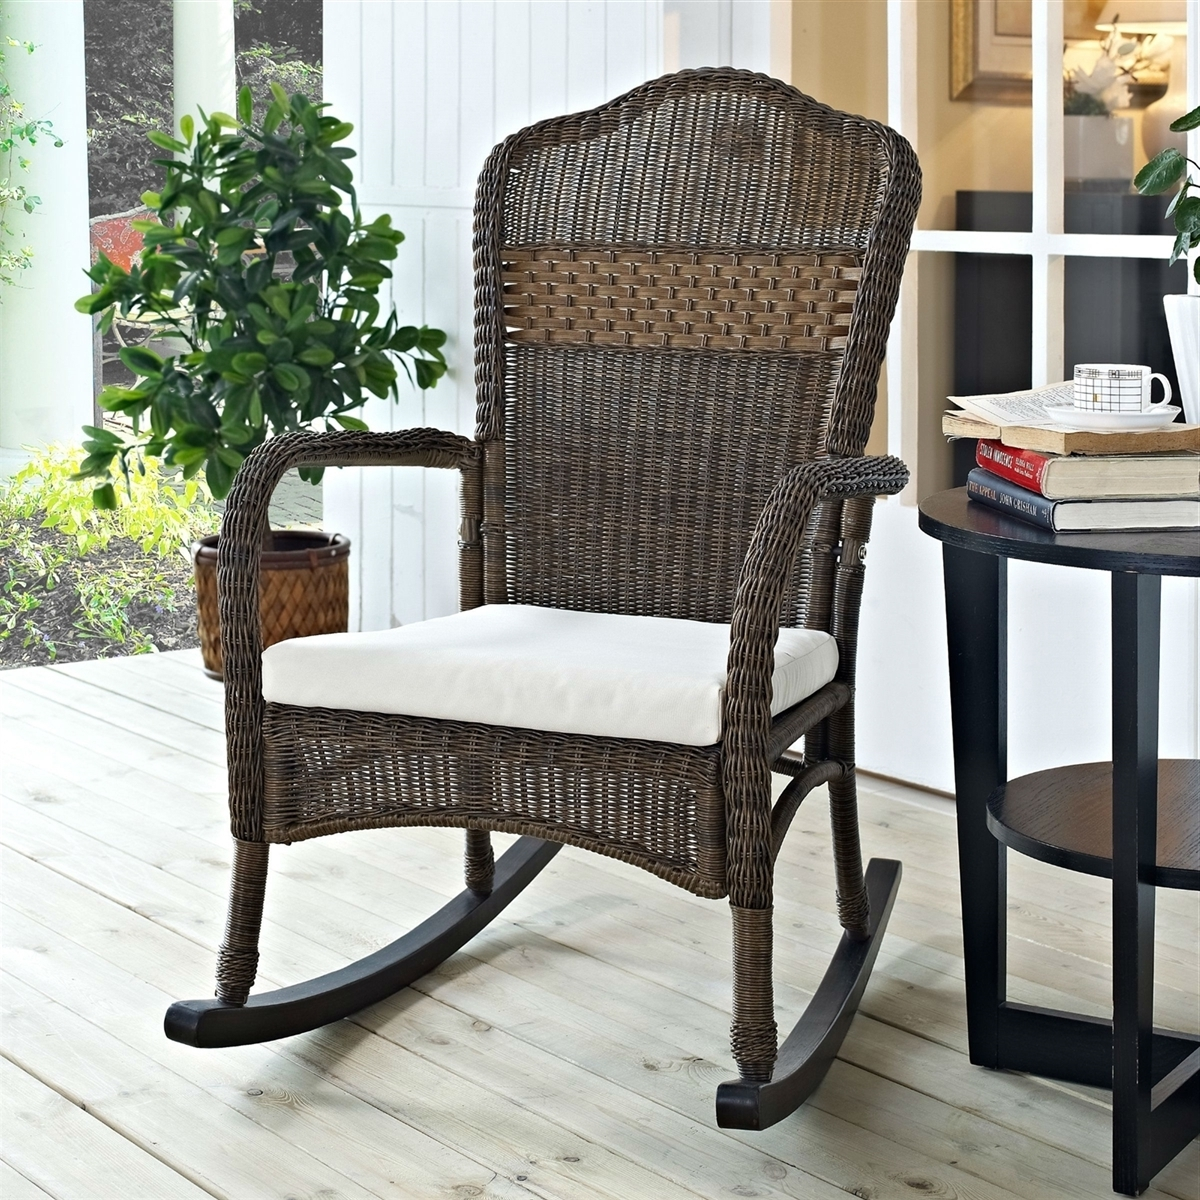 Resin Wicker Patio Rocking Chairs Throughout Well Liked Wicker Patio Furniture Rocking Chair Mocha With Beige Cushion (View 8 of 15)